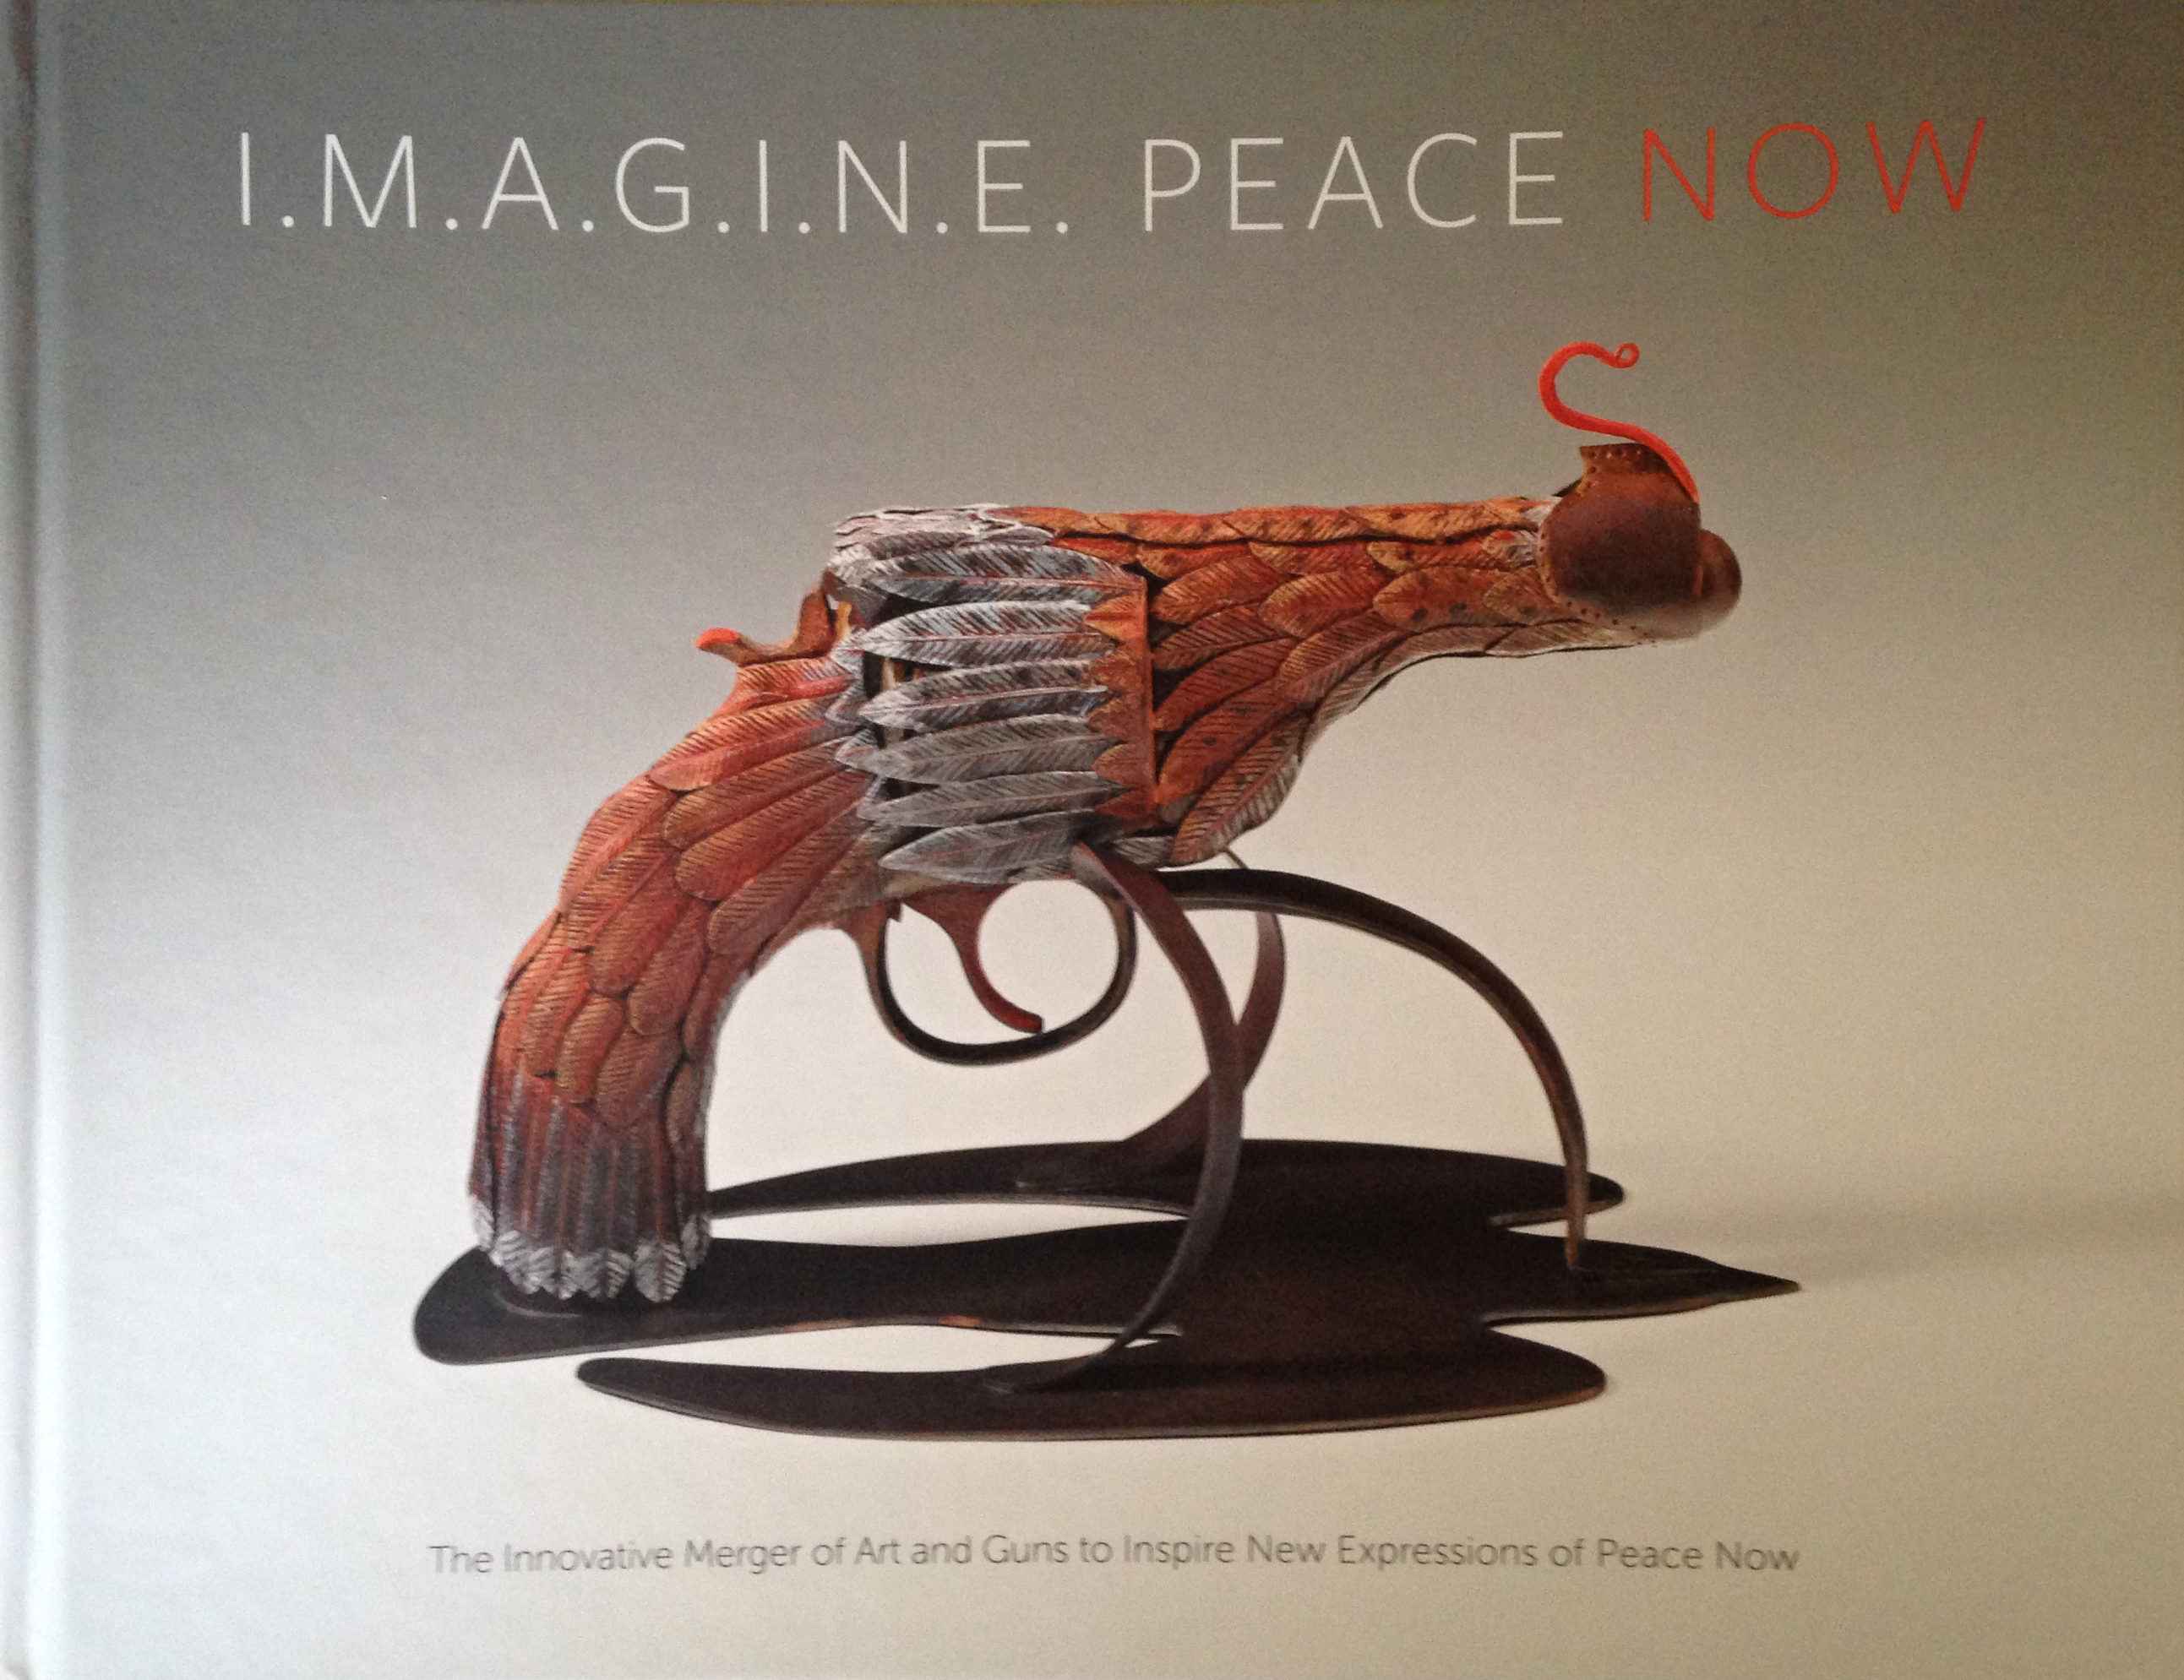 I.M.A.G.I.N.E. Peace Now Catalog Cover Cropped